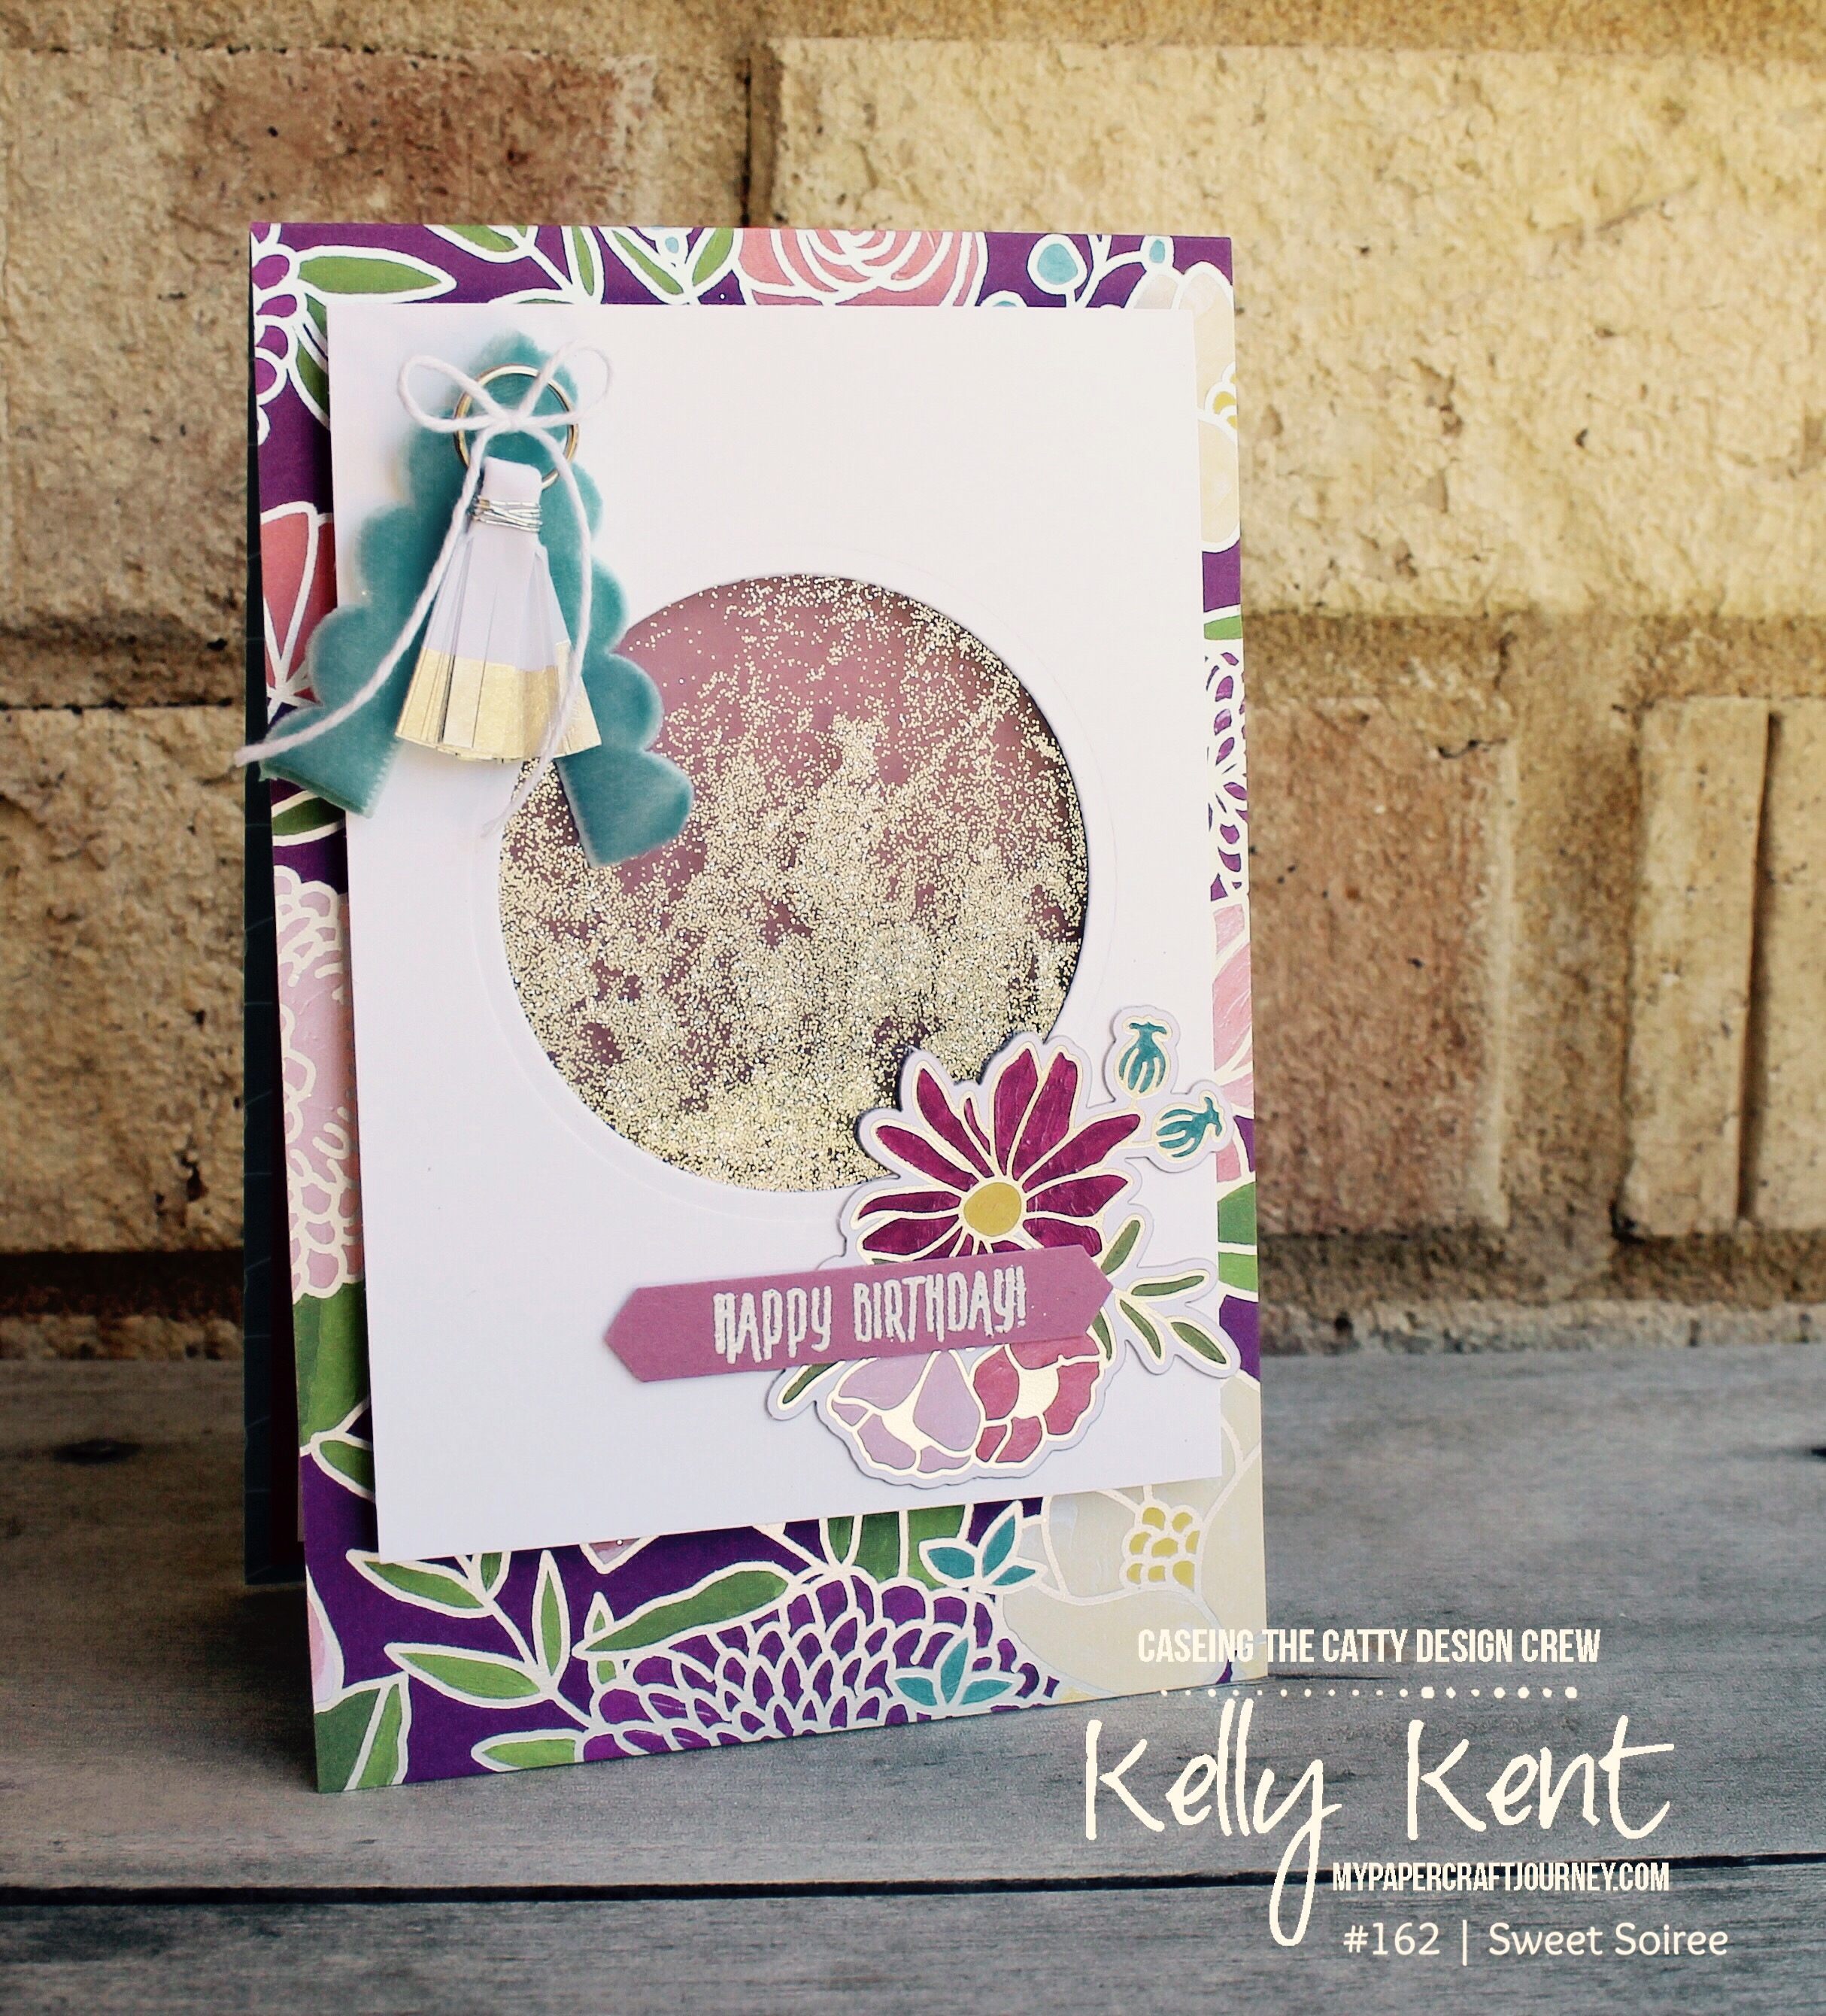 CASEing the Catty #162 Sweet Soiree | kelly kent